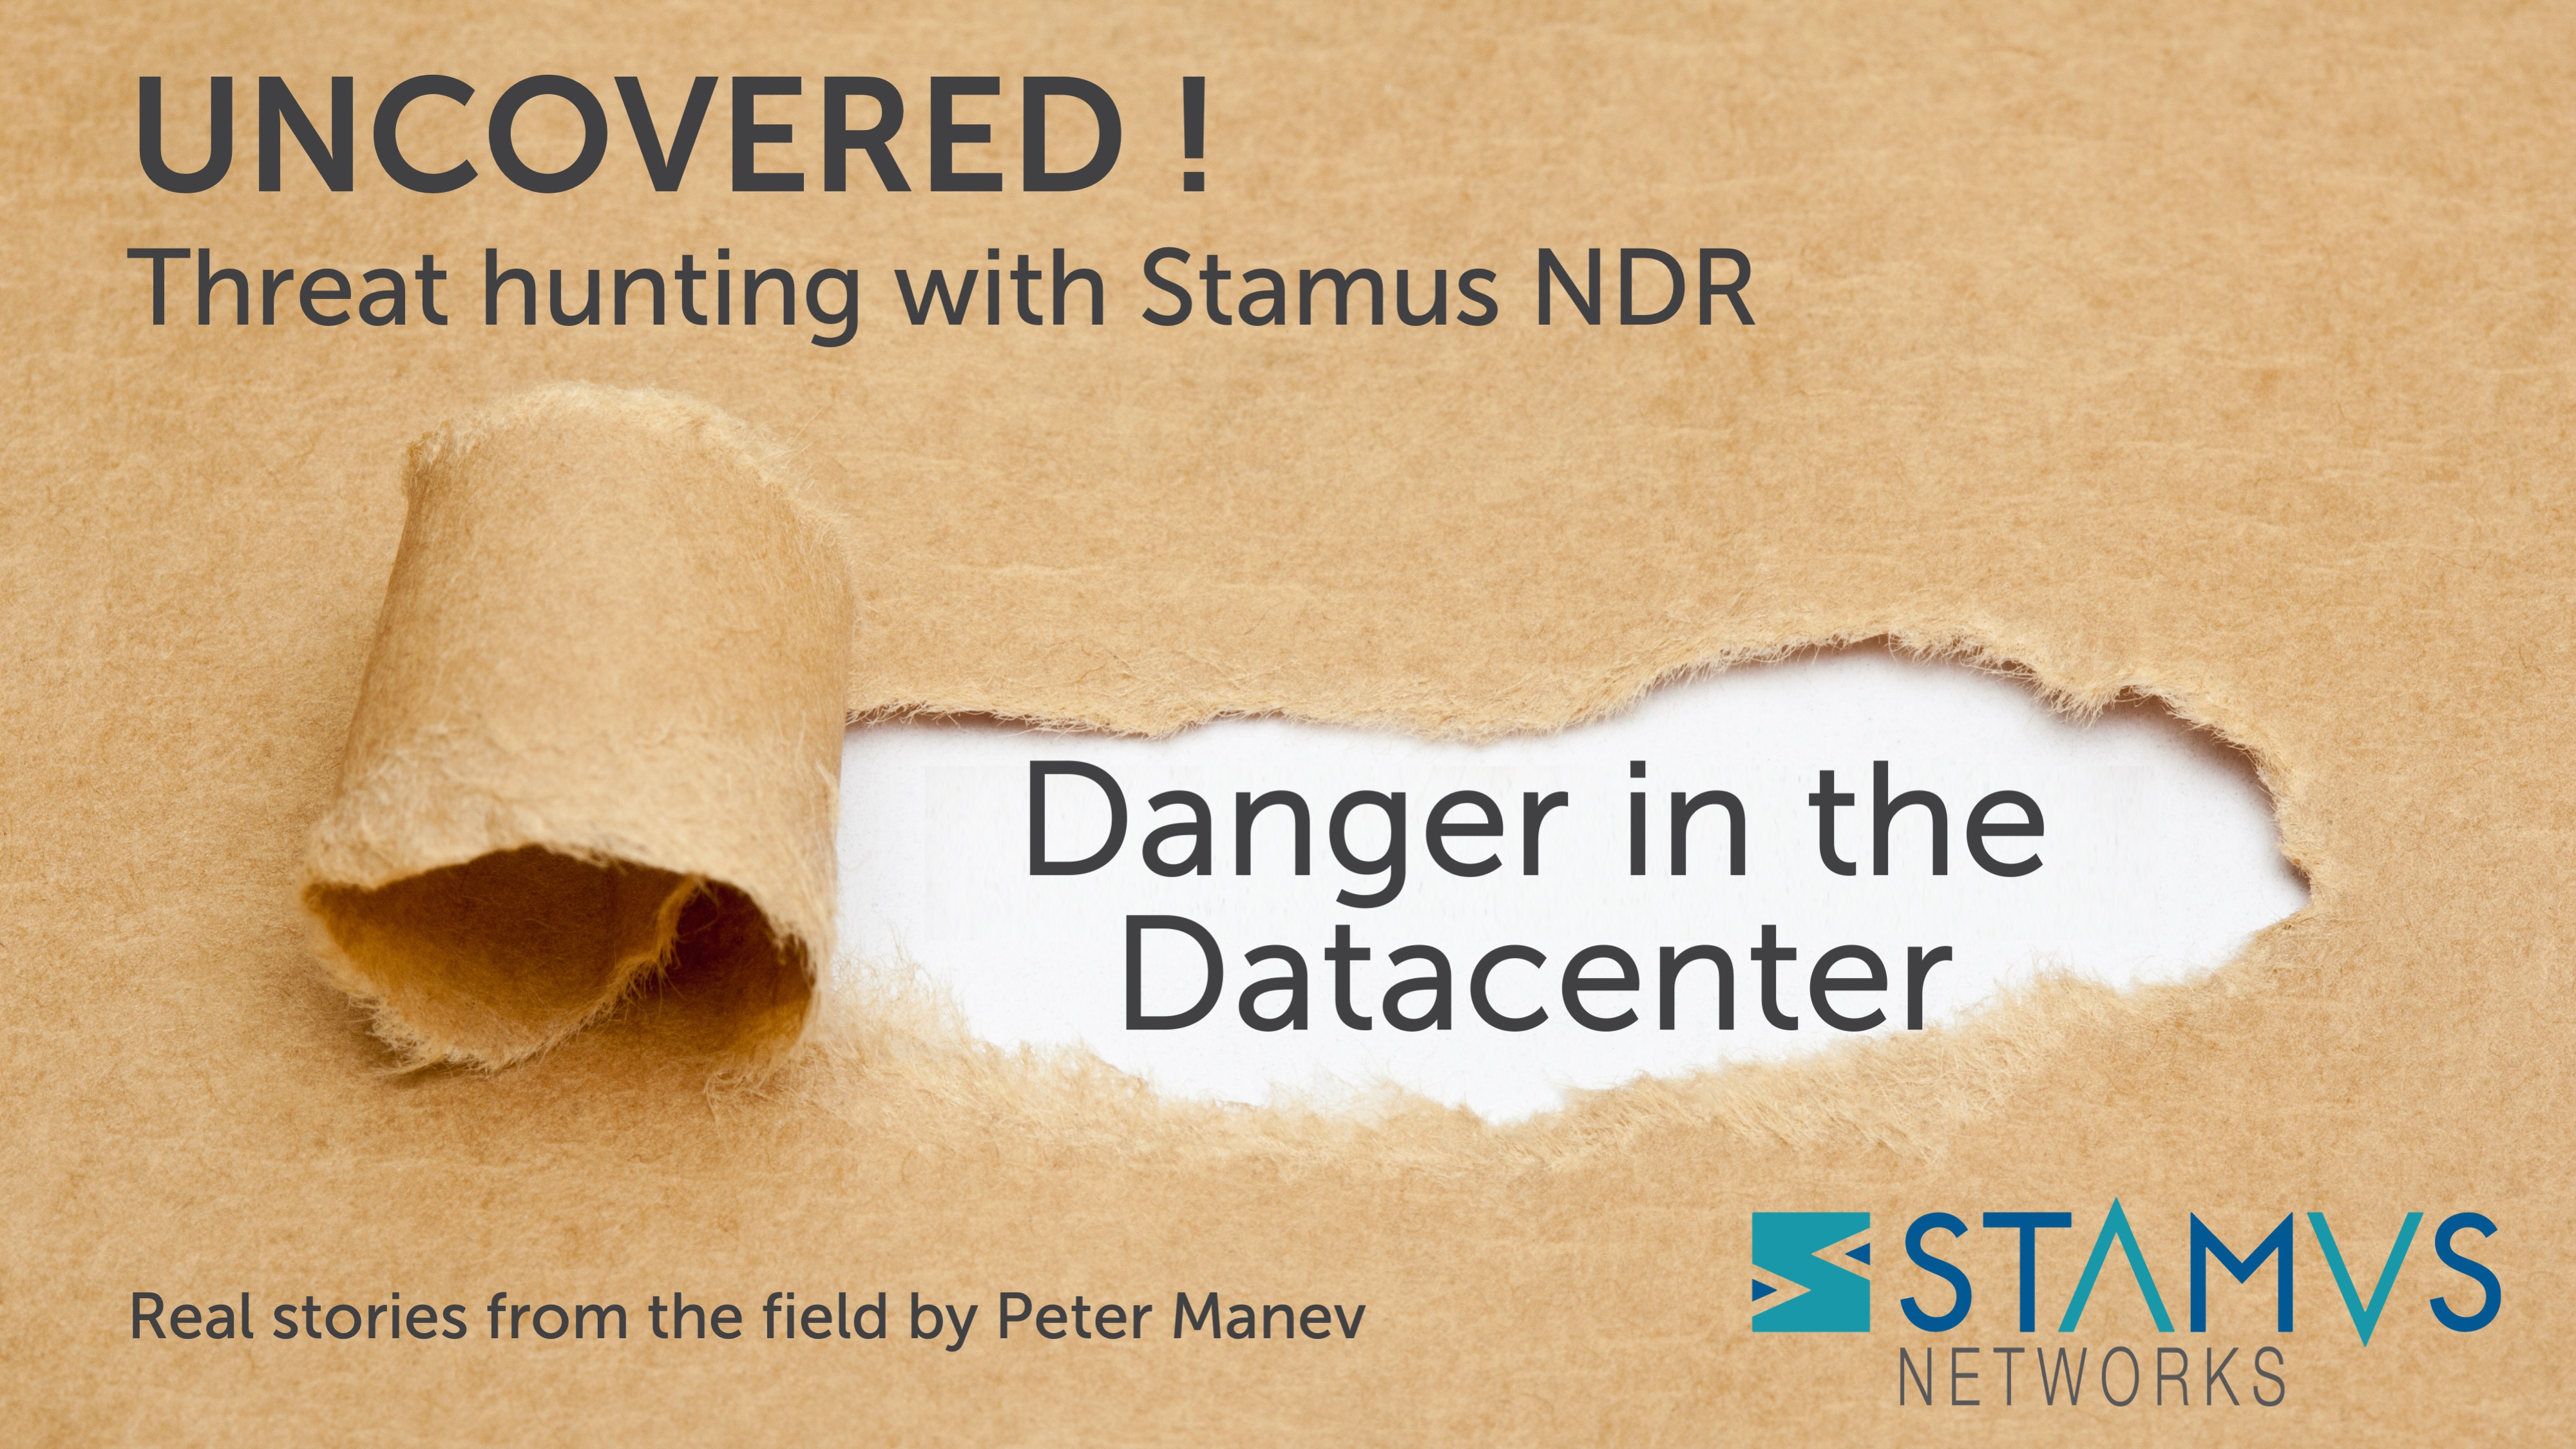 Stamus Networks - Uncovered by Stamus NDR | Danger in the Datacenter